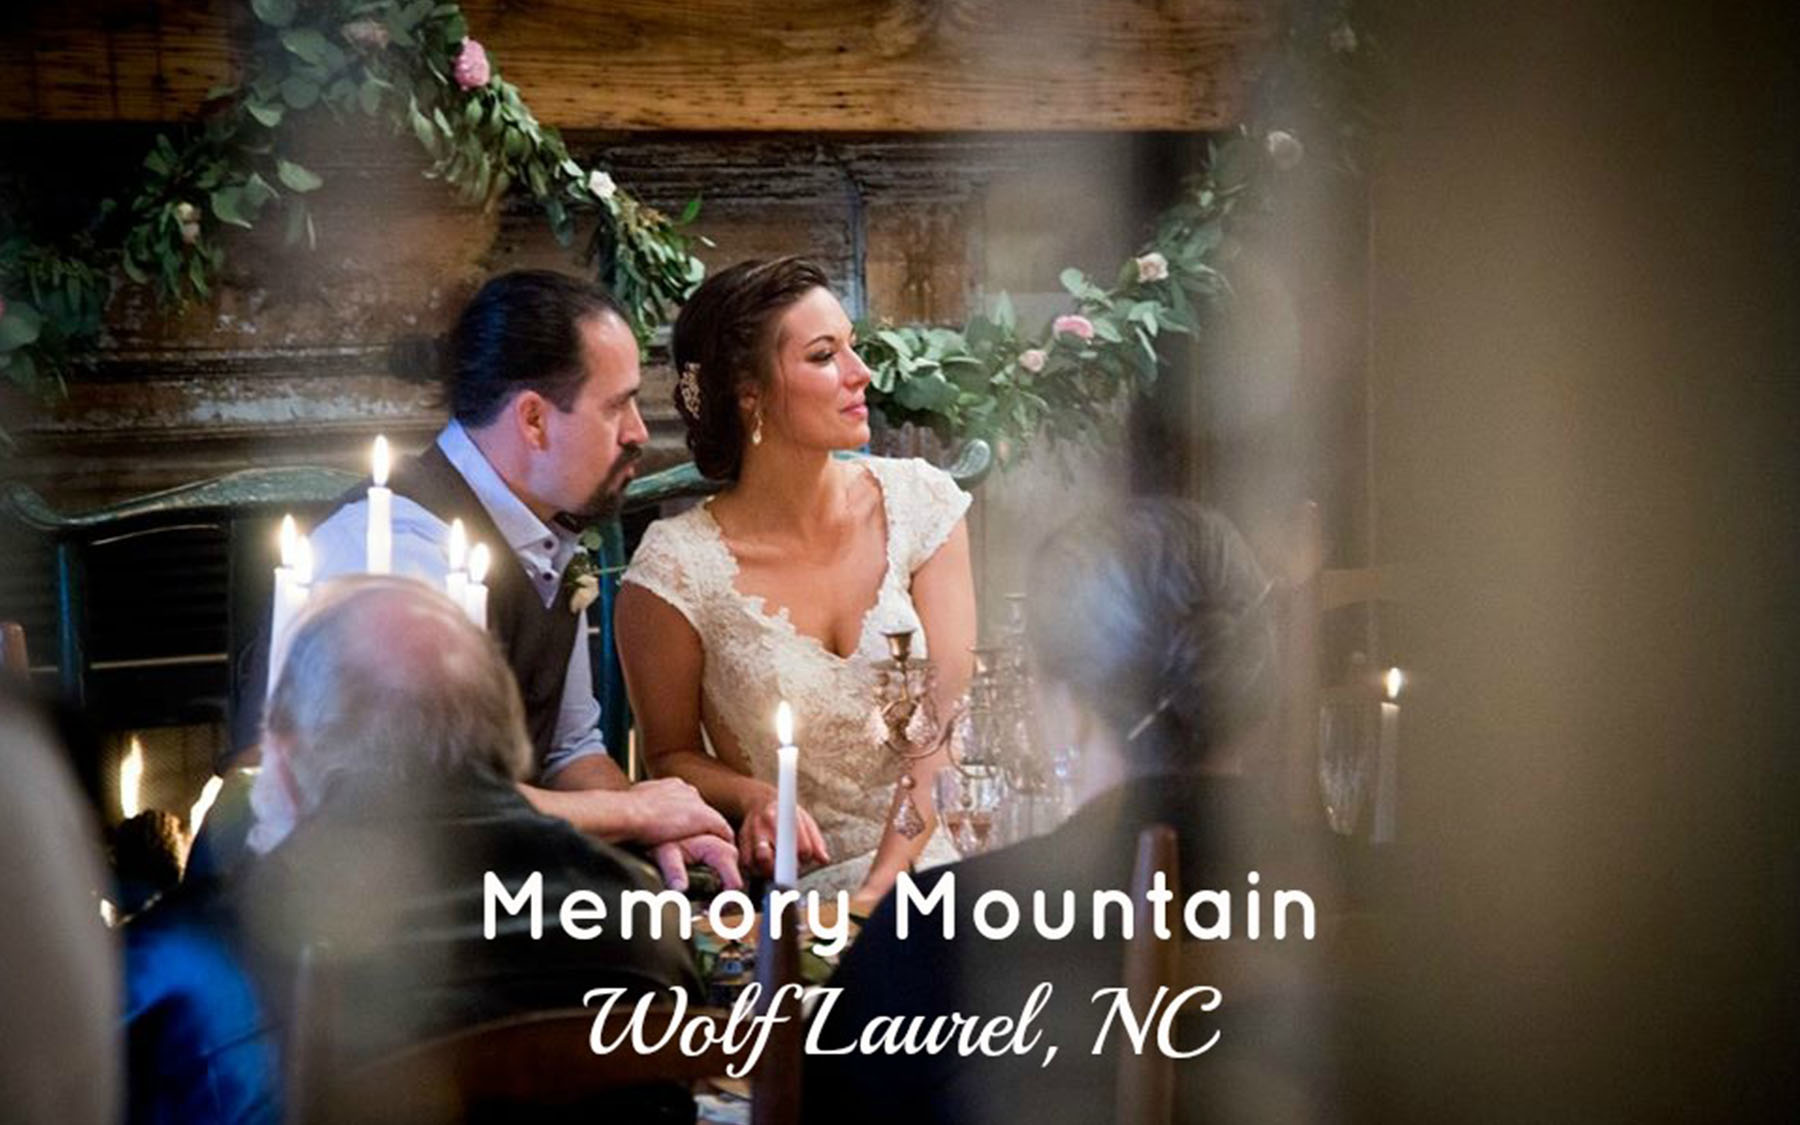 MEMORY MOUNTAIN AT WOLF LAUREL  Nestled in the Blue Ridge Mountains of Asheville, Memory Mountain's creekside chapel or lakeside dock is the perfect place for your intimate ceremony. Offering a unique, all-inclusive venue for your wedding.   More Information     Leave a Review